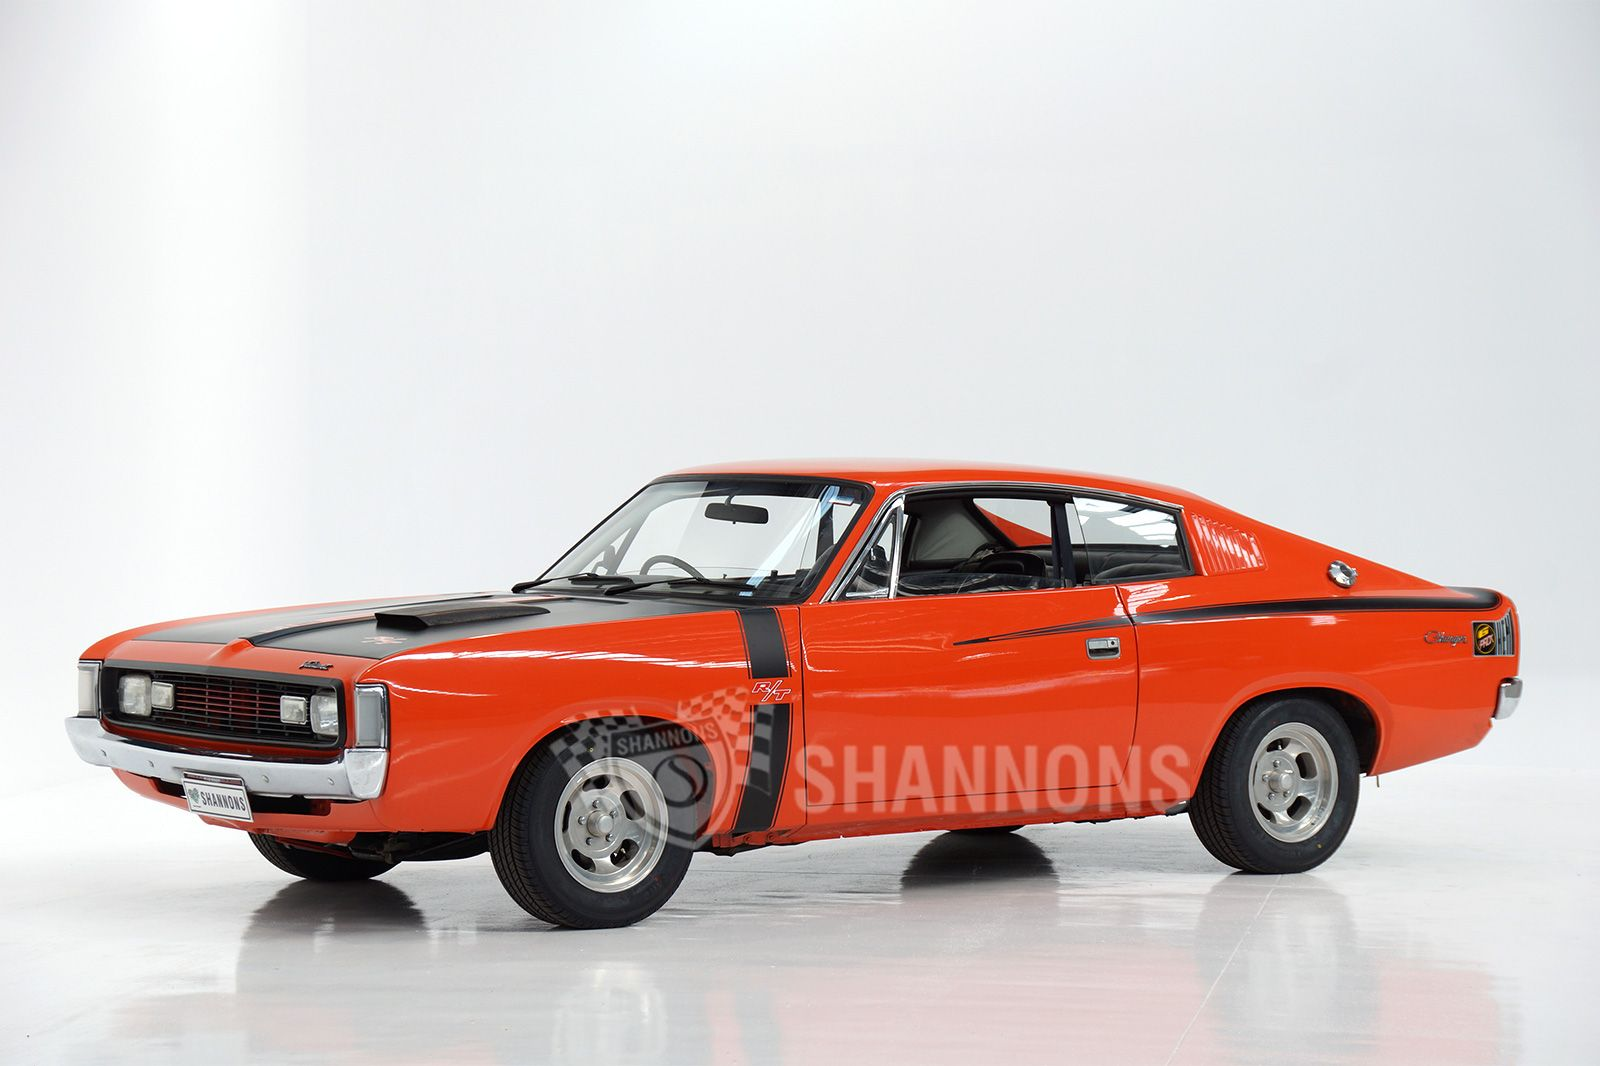 1971 'Bathurst' coupe R/T38 VH Charger